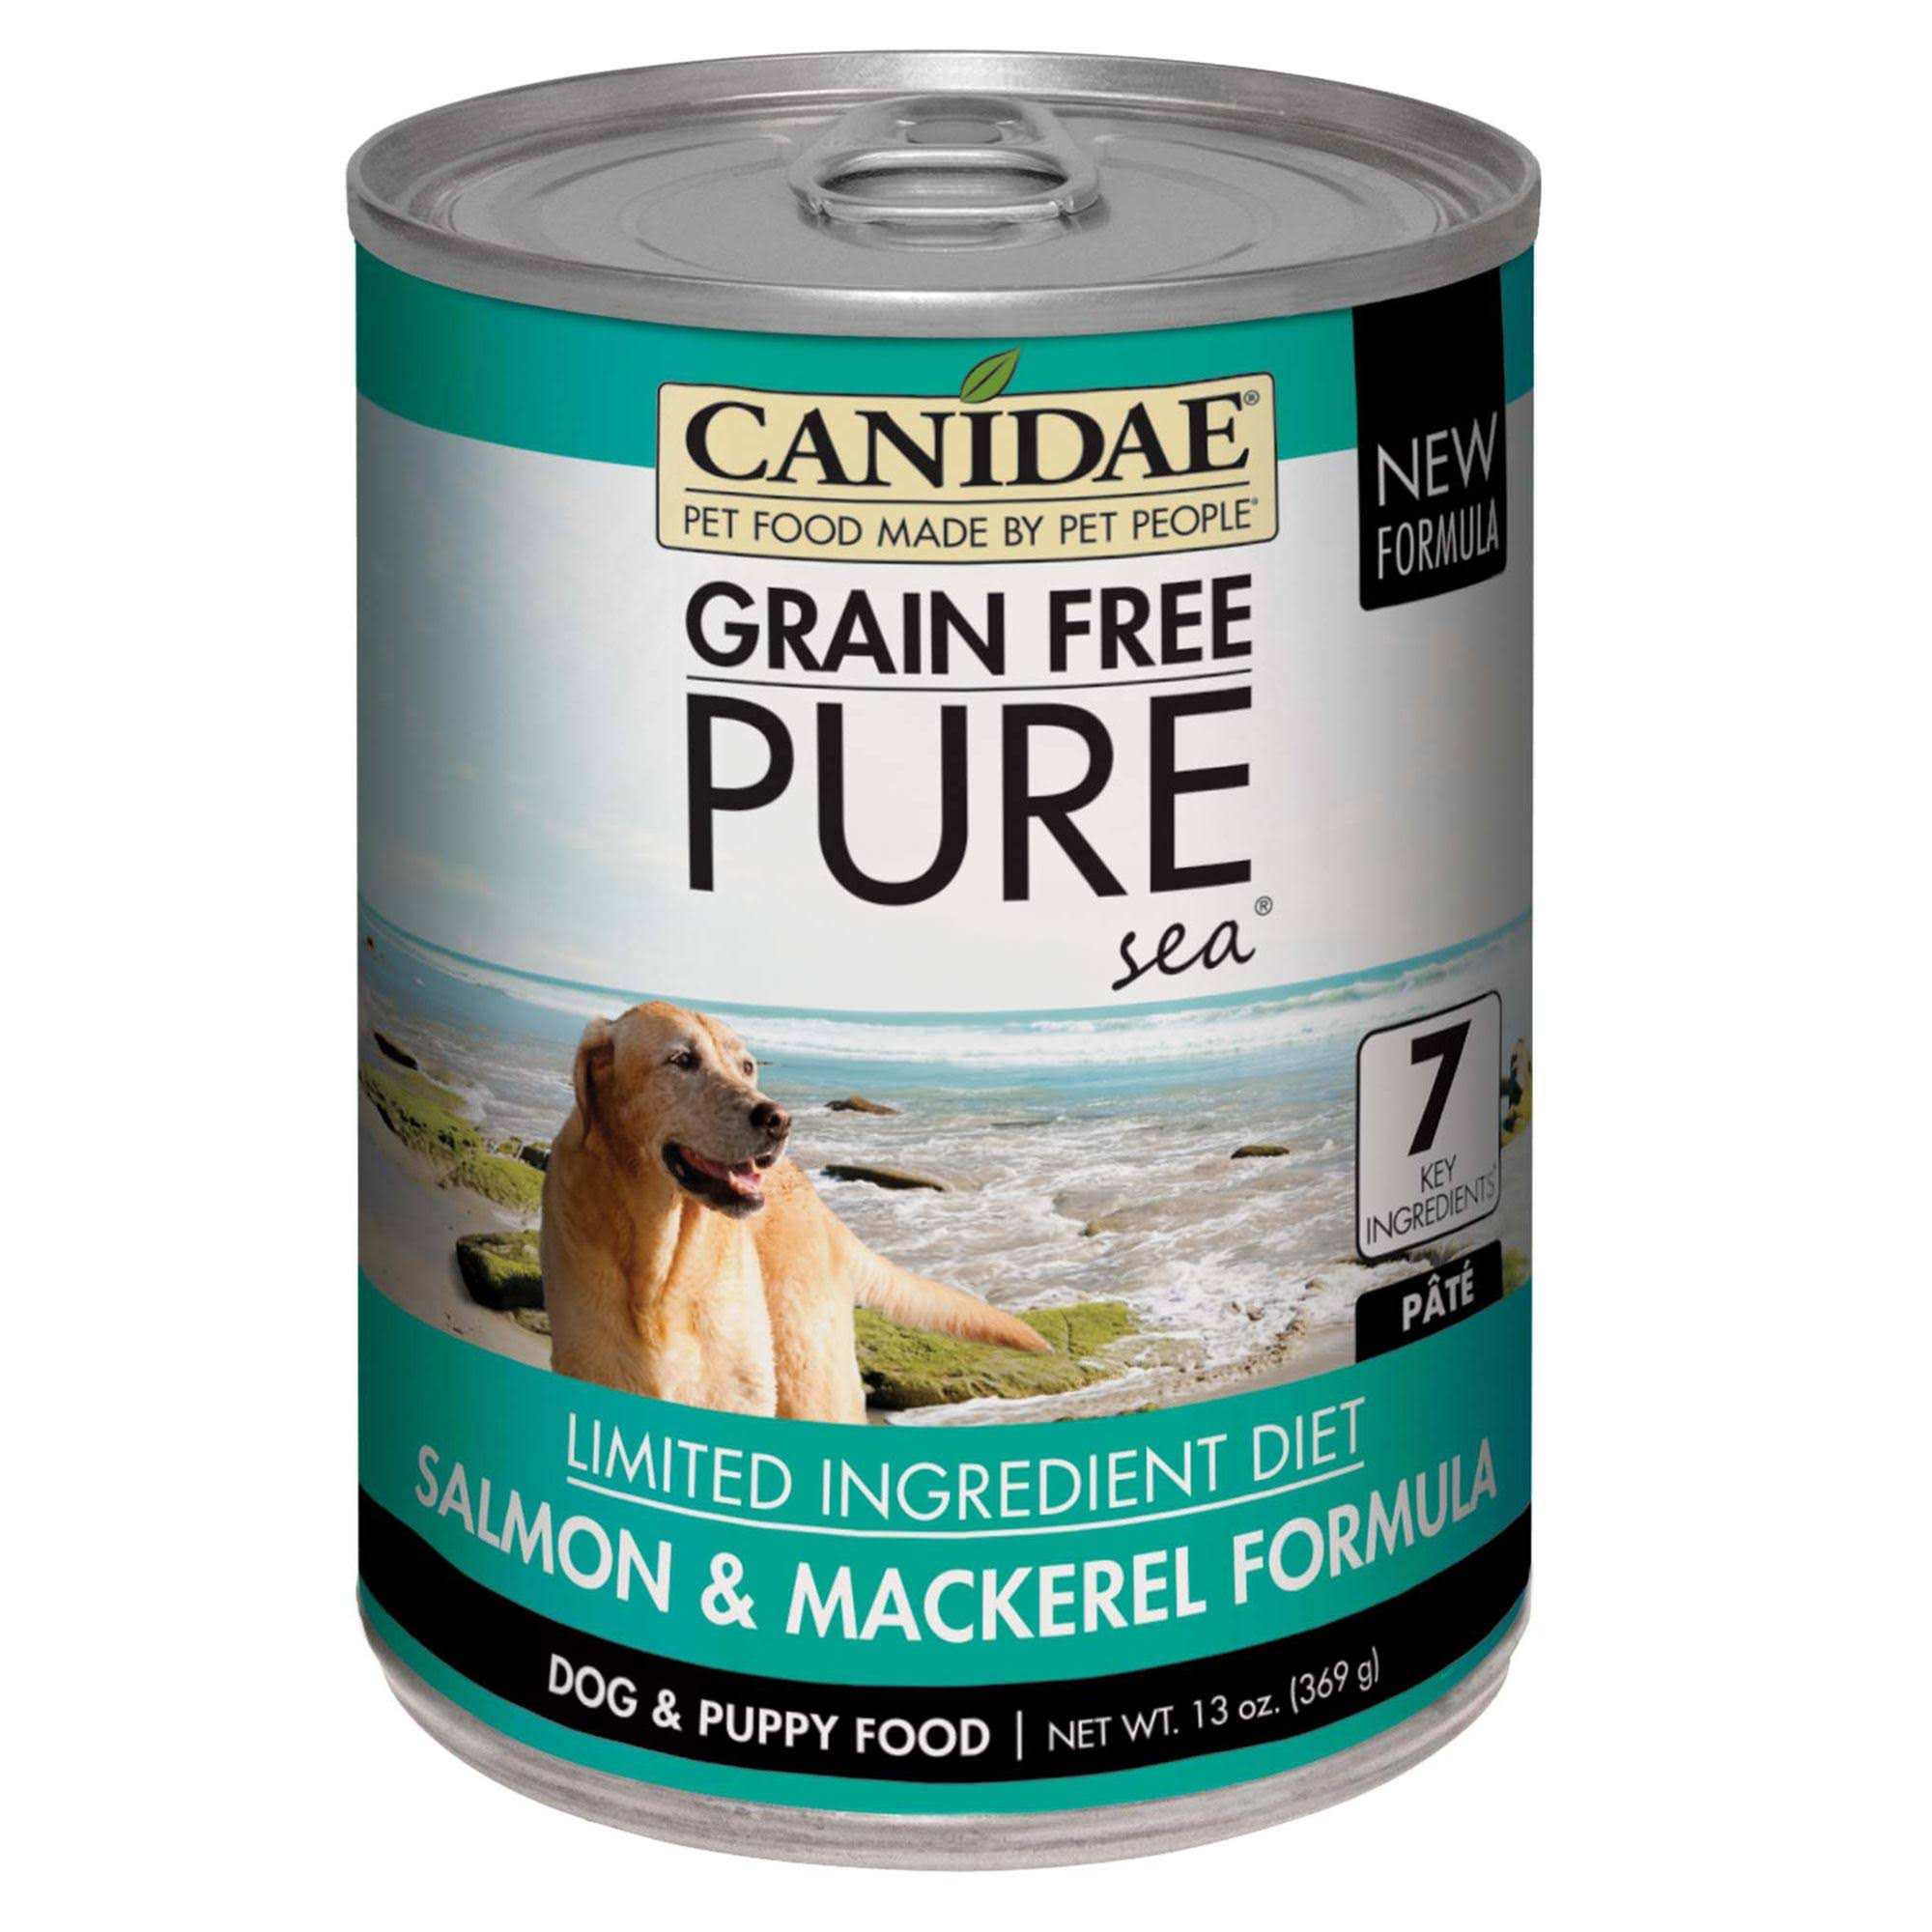 Canidae Grain Free Pure Sea Salmon & Mackerel Canned Dog Food